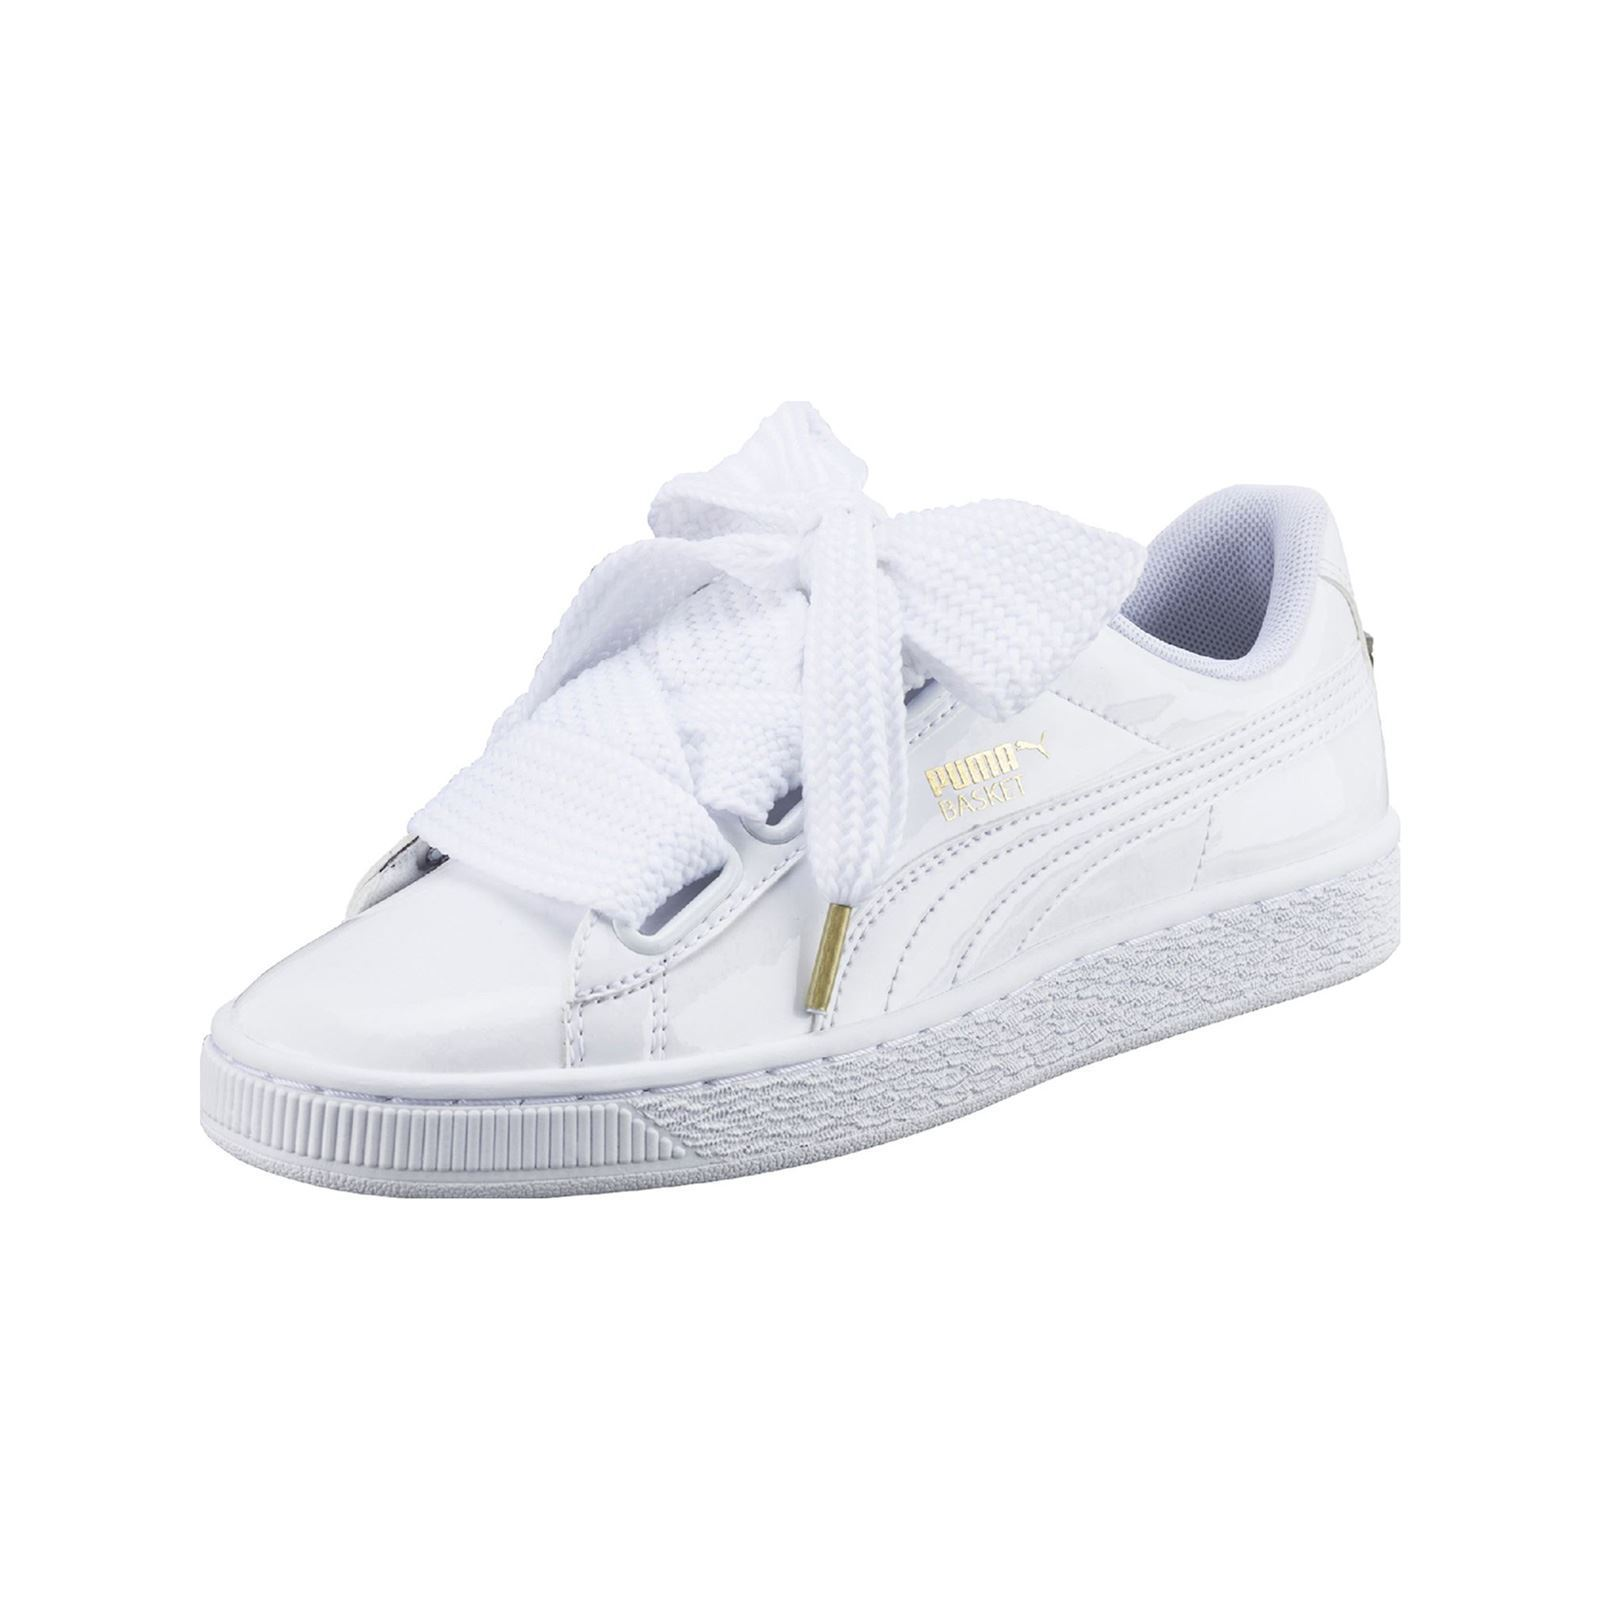 9f6507335f1f Puma Heart - Baskets Mode - blanc   BrandAlley